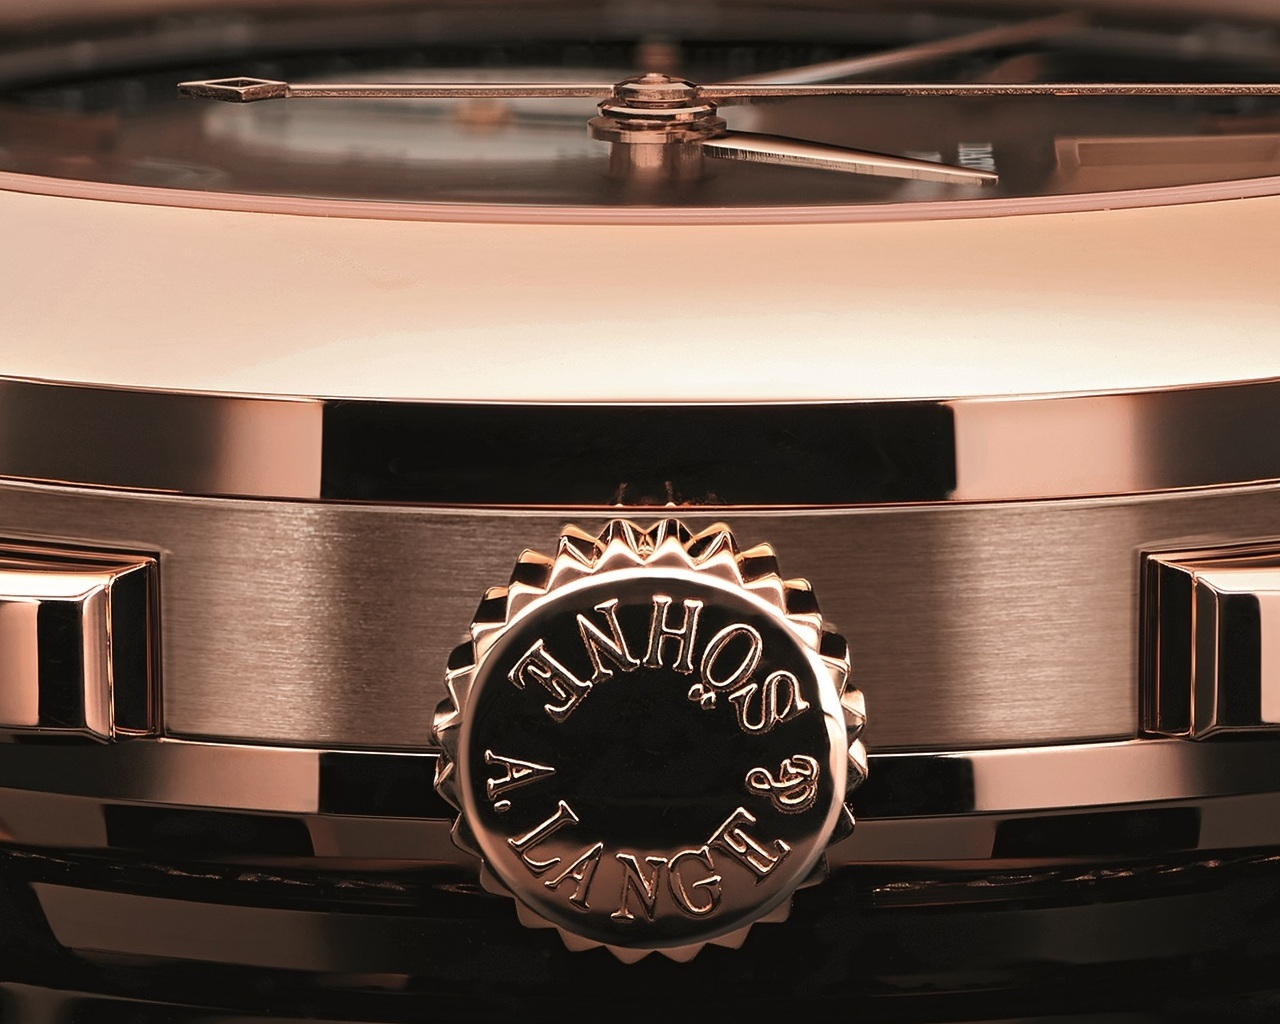 sihh-2015-a-lange-sohne-datograph-updown-oro-rosa-cronografo-flyback_0-100_6